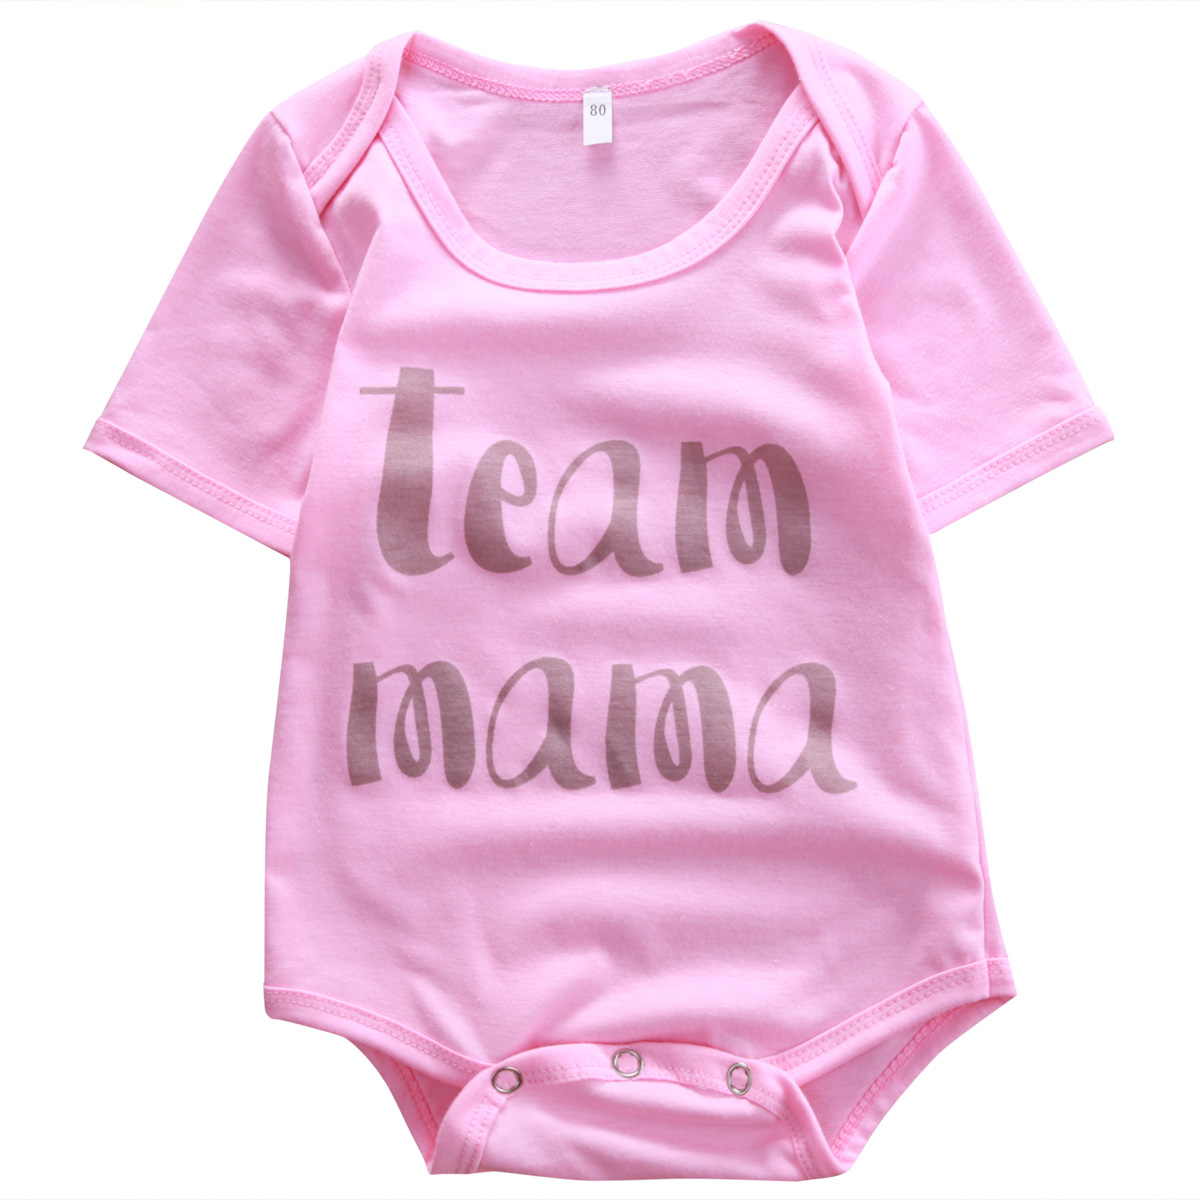 Compare Prices on Pink Rompers- Online Shopping/Buy Low Price Pink ...